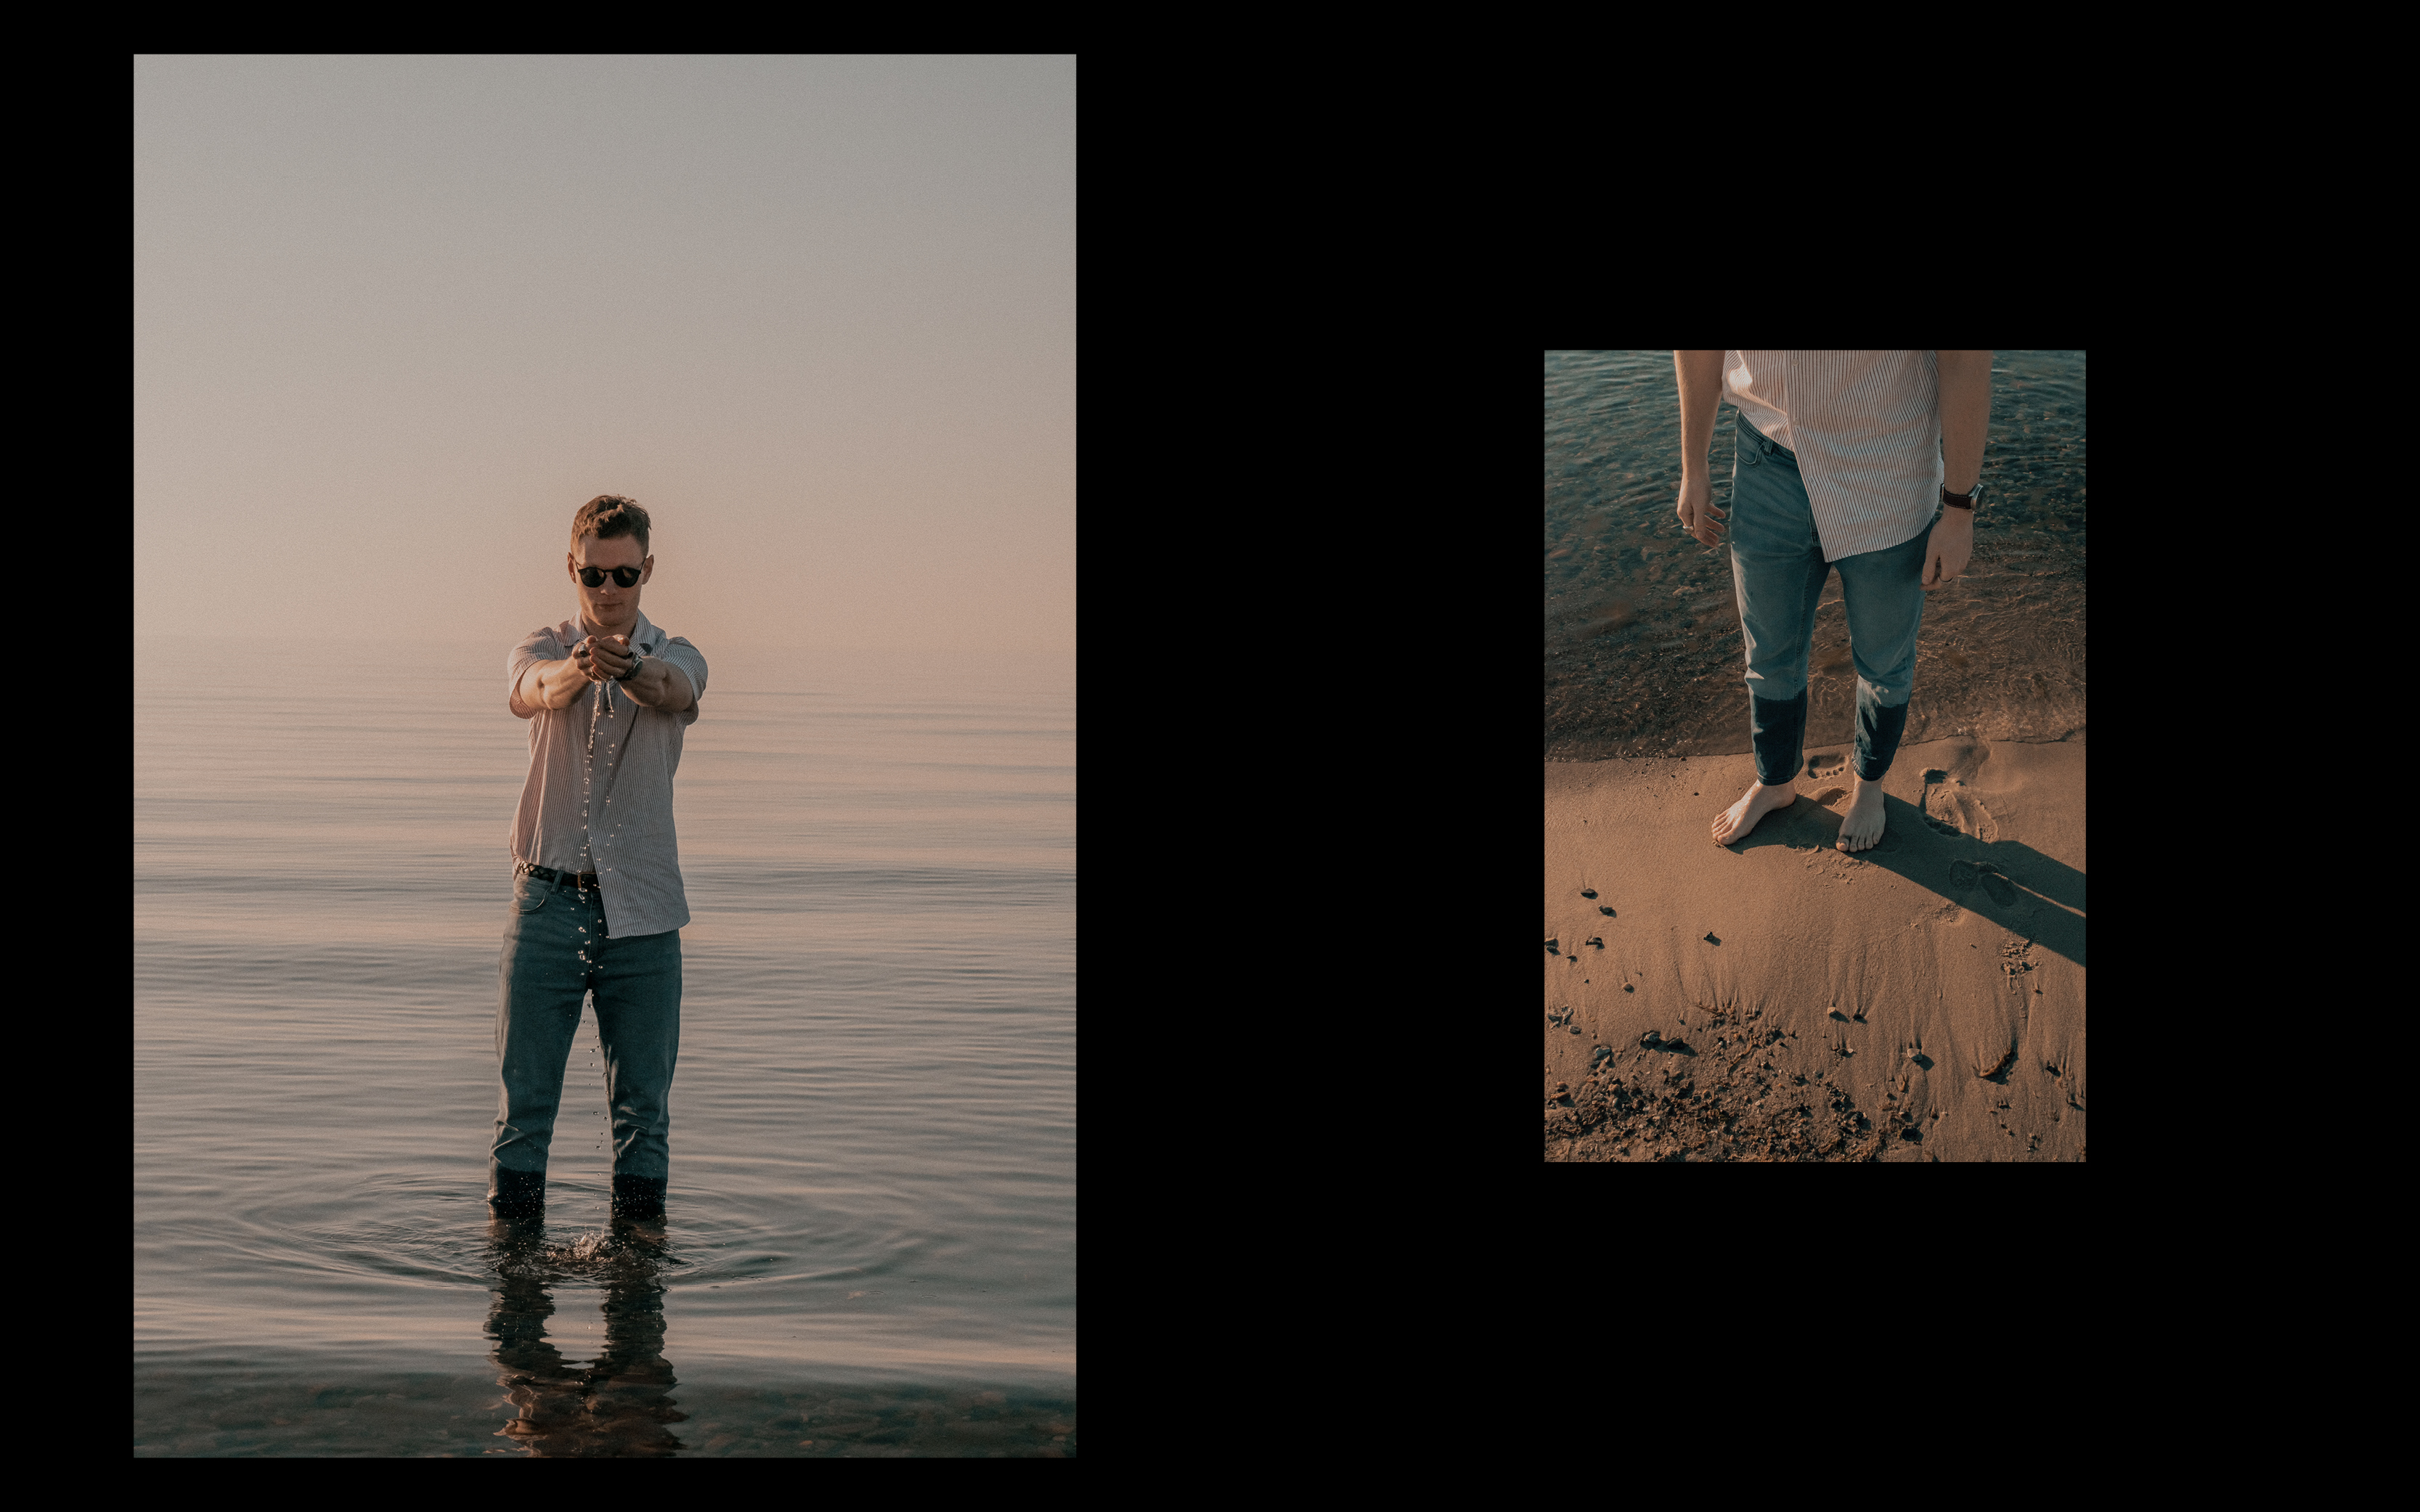 Portrait De L'Homme - menswear summer editorial - forgotten days at the beach